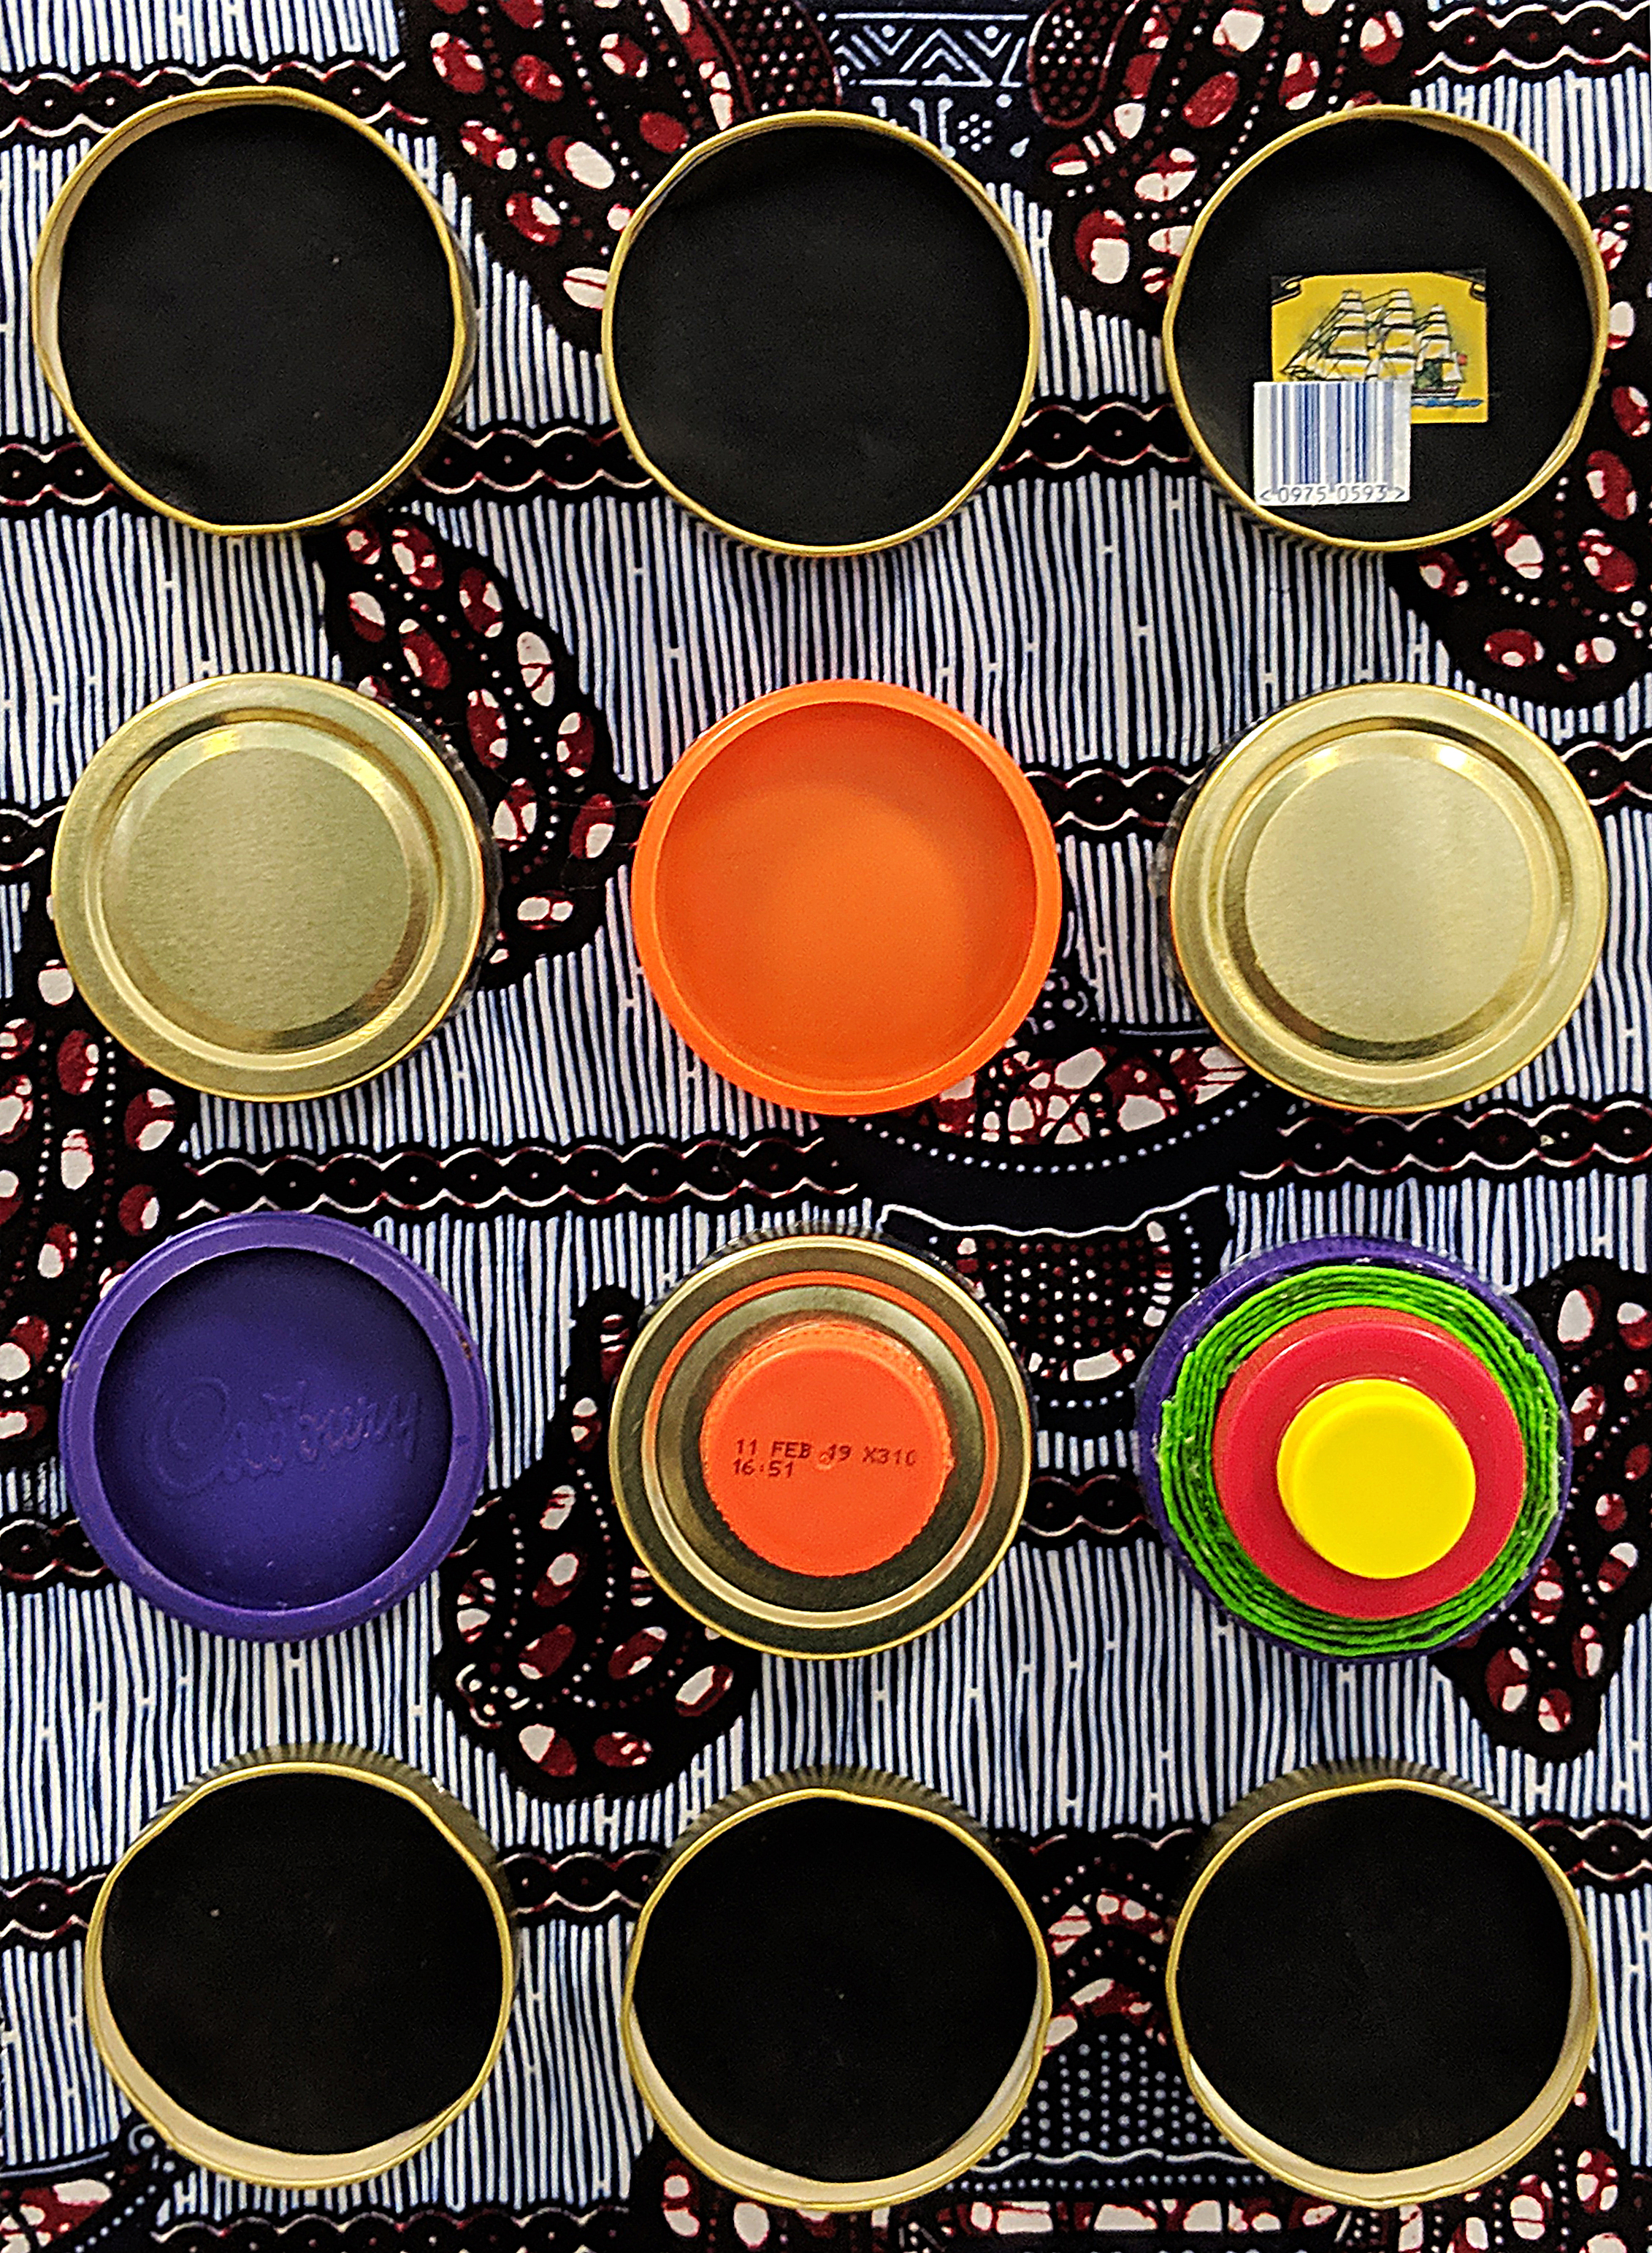 Sell by - Jam jar lids, bottle tops and fabric on canvas